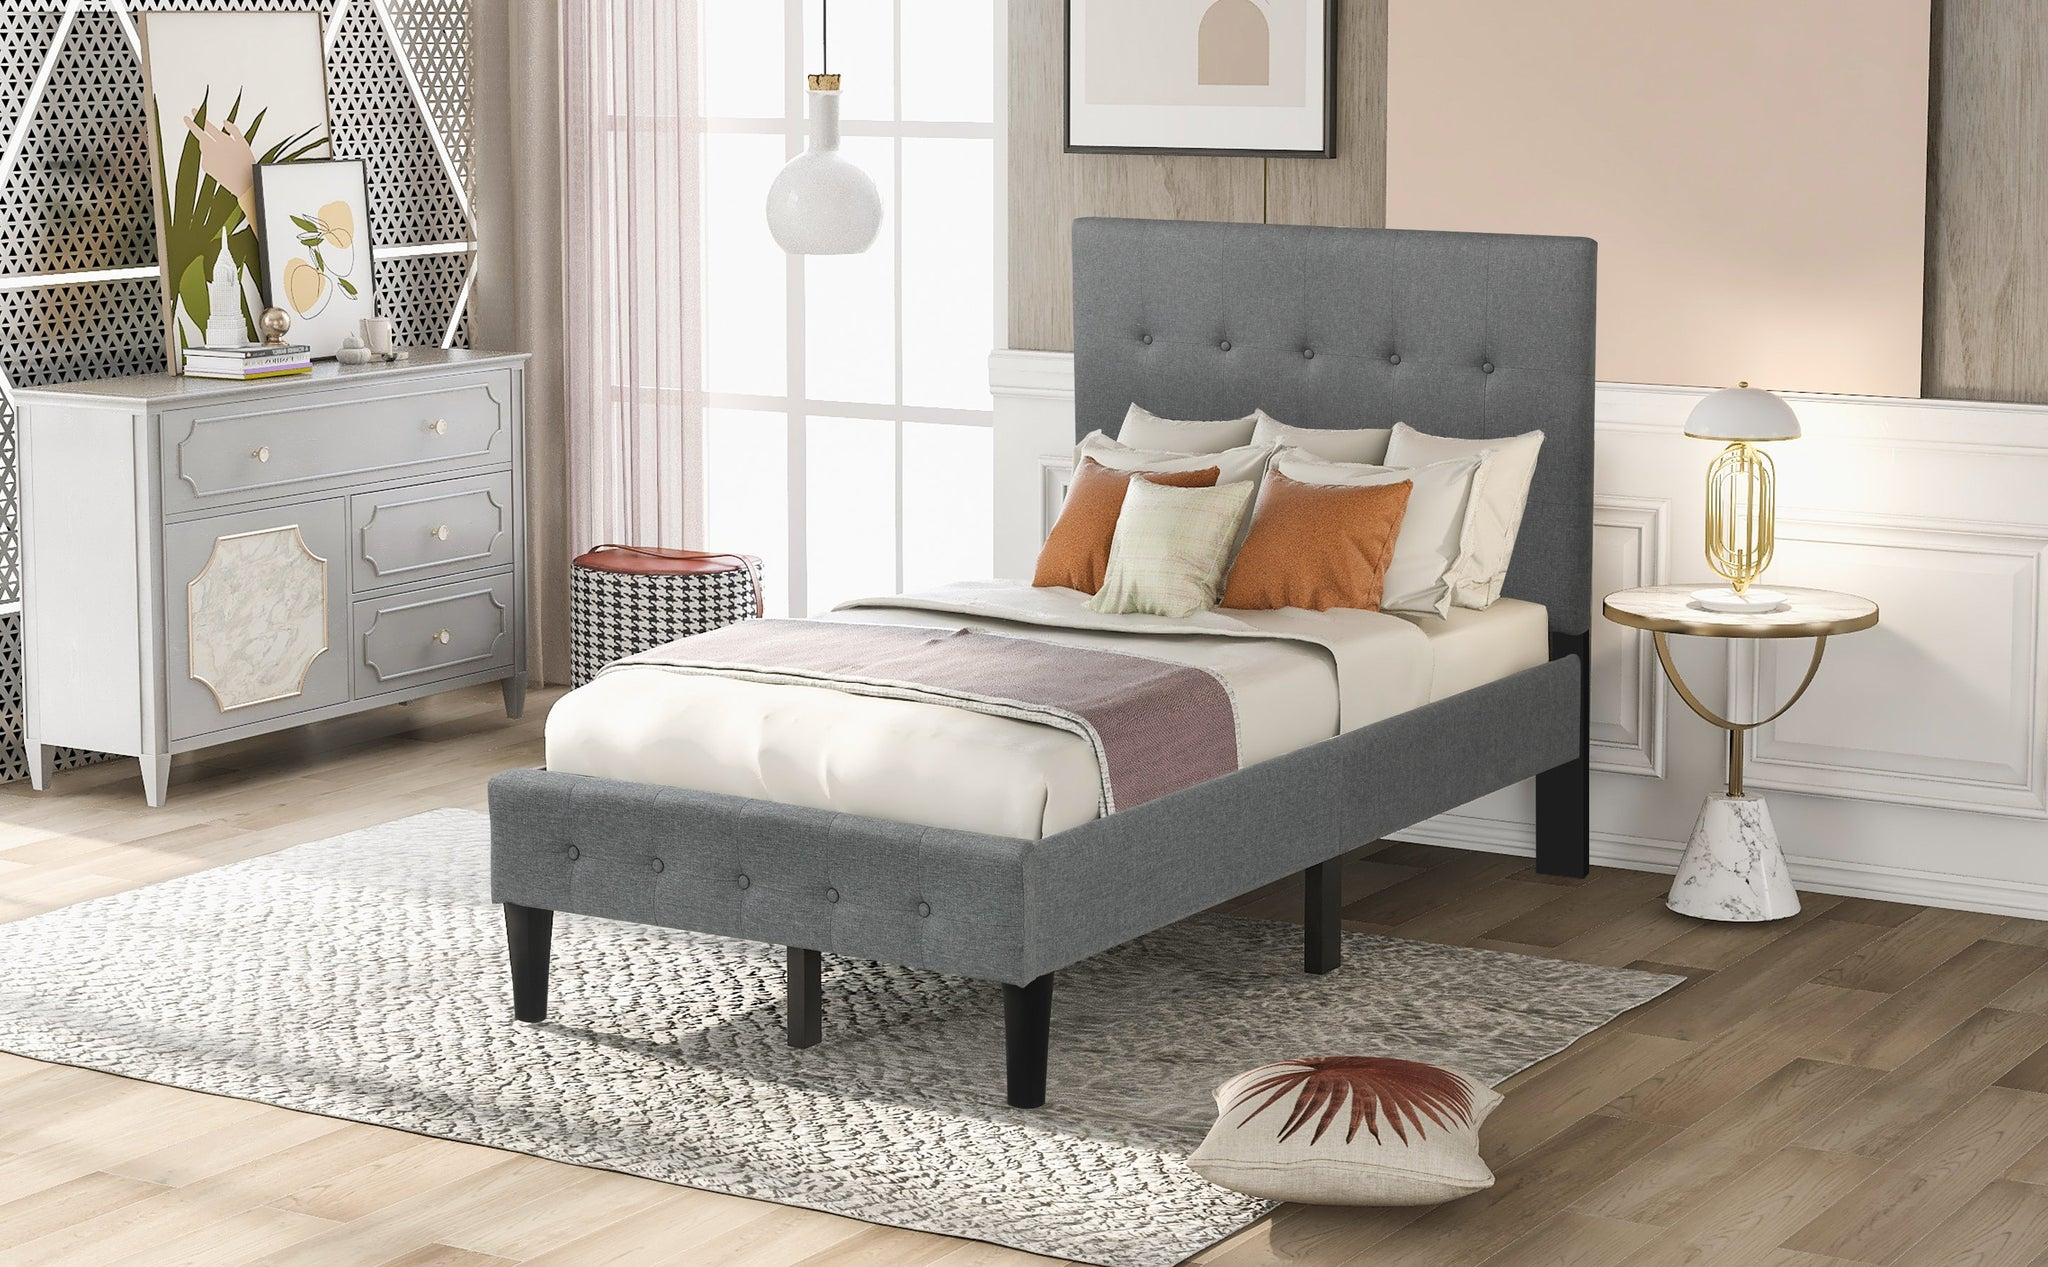 Twin Gray Upholstered Wood Platform Bed With Button Tufted Headboard A Homedaybed